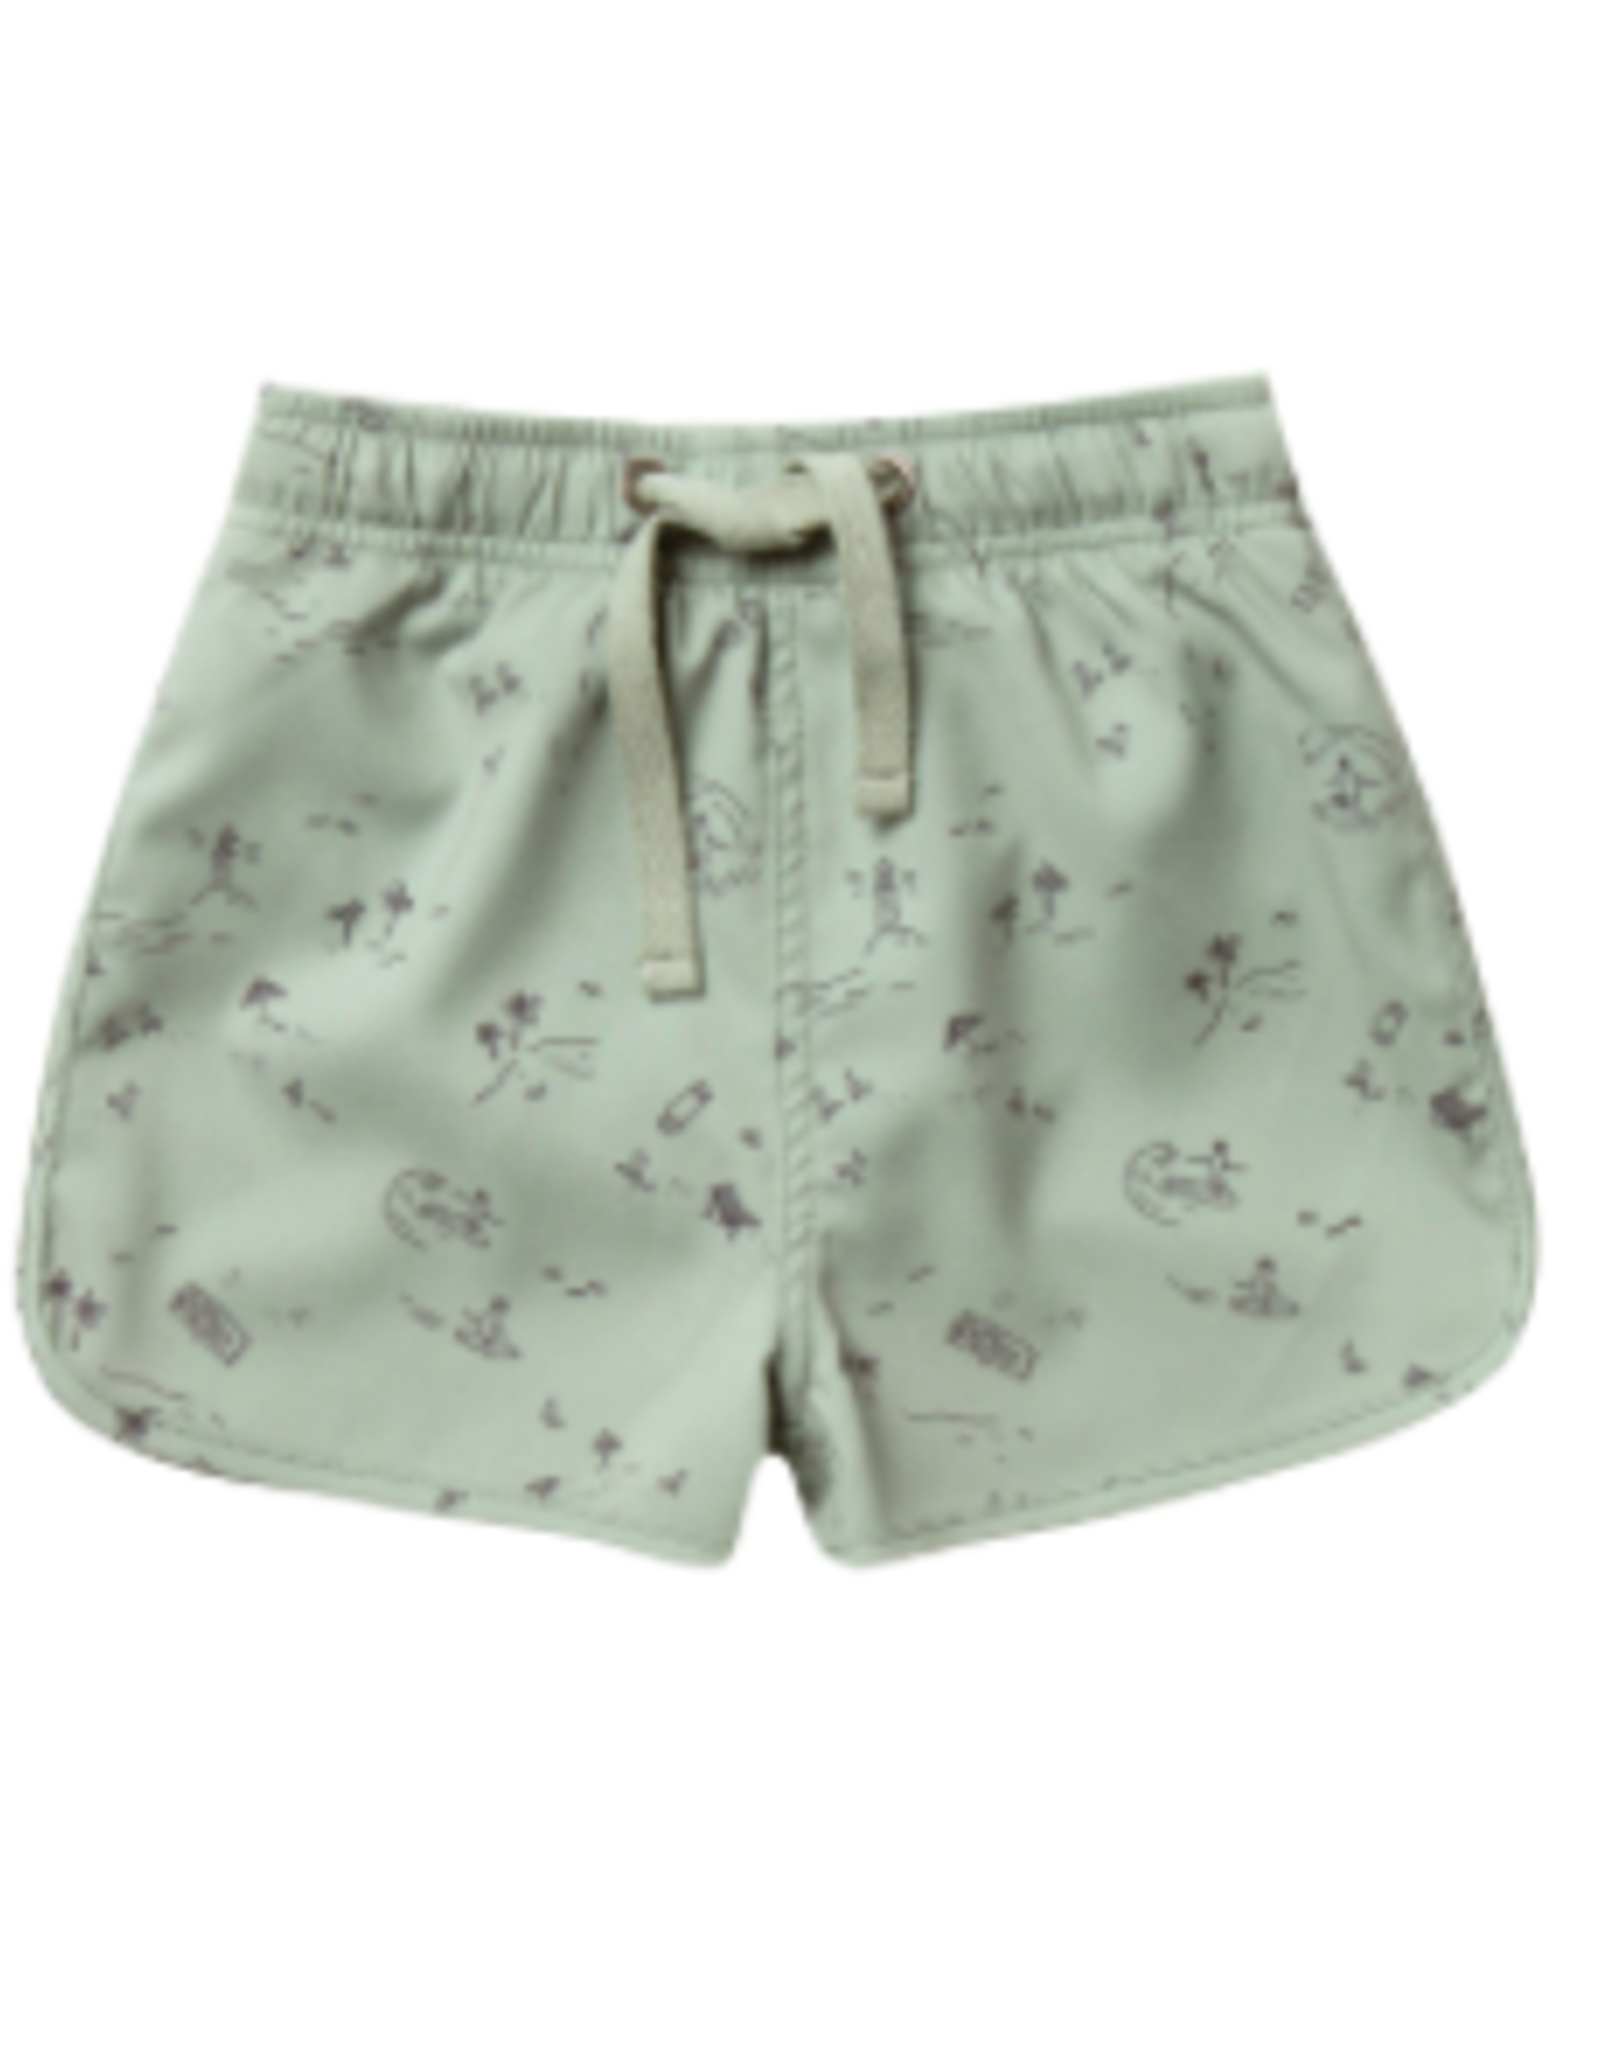 Rylee + Cru Beach Town Swim Trunk